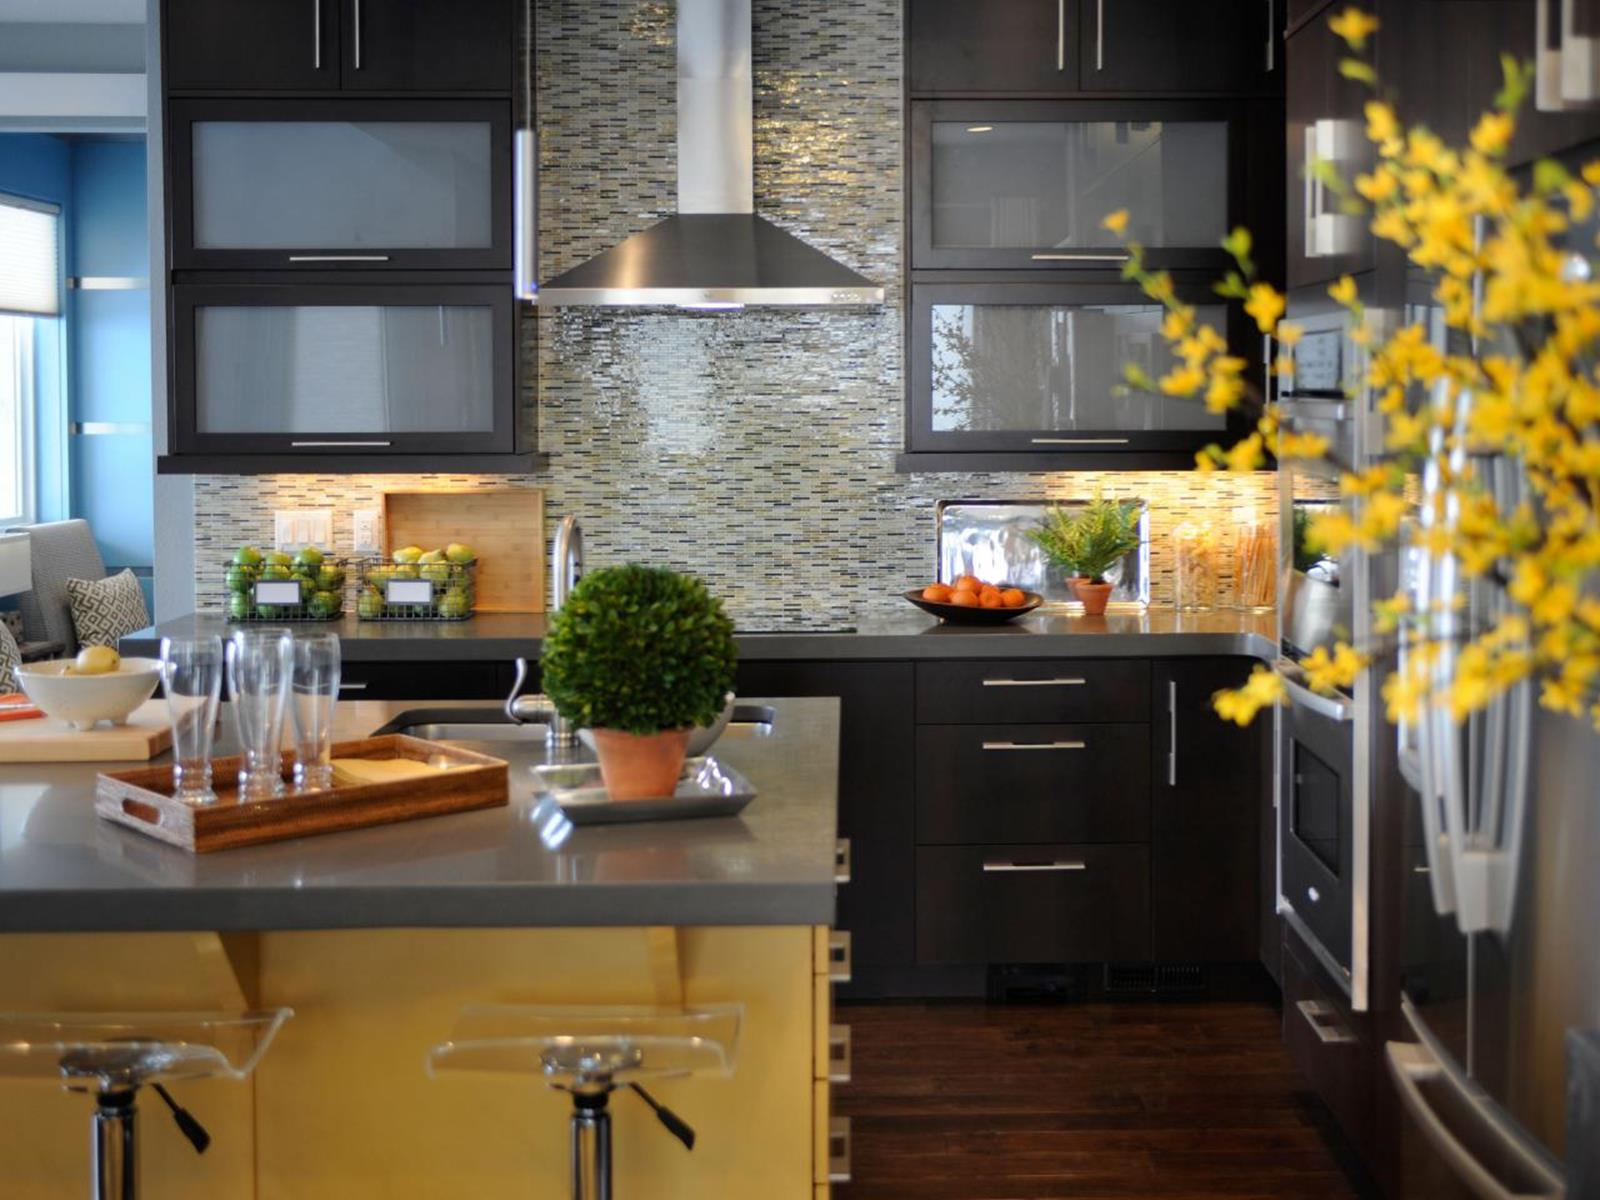 Projects to Make Kitchen More Neat and Beautiful 1